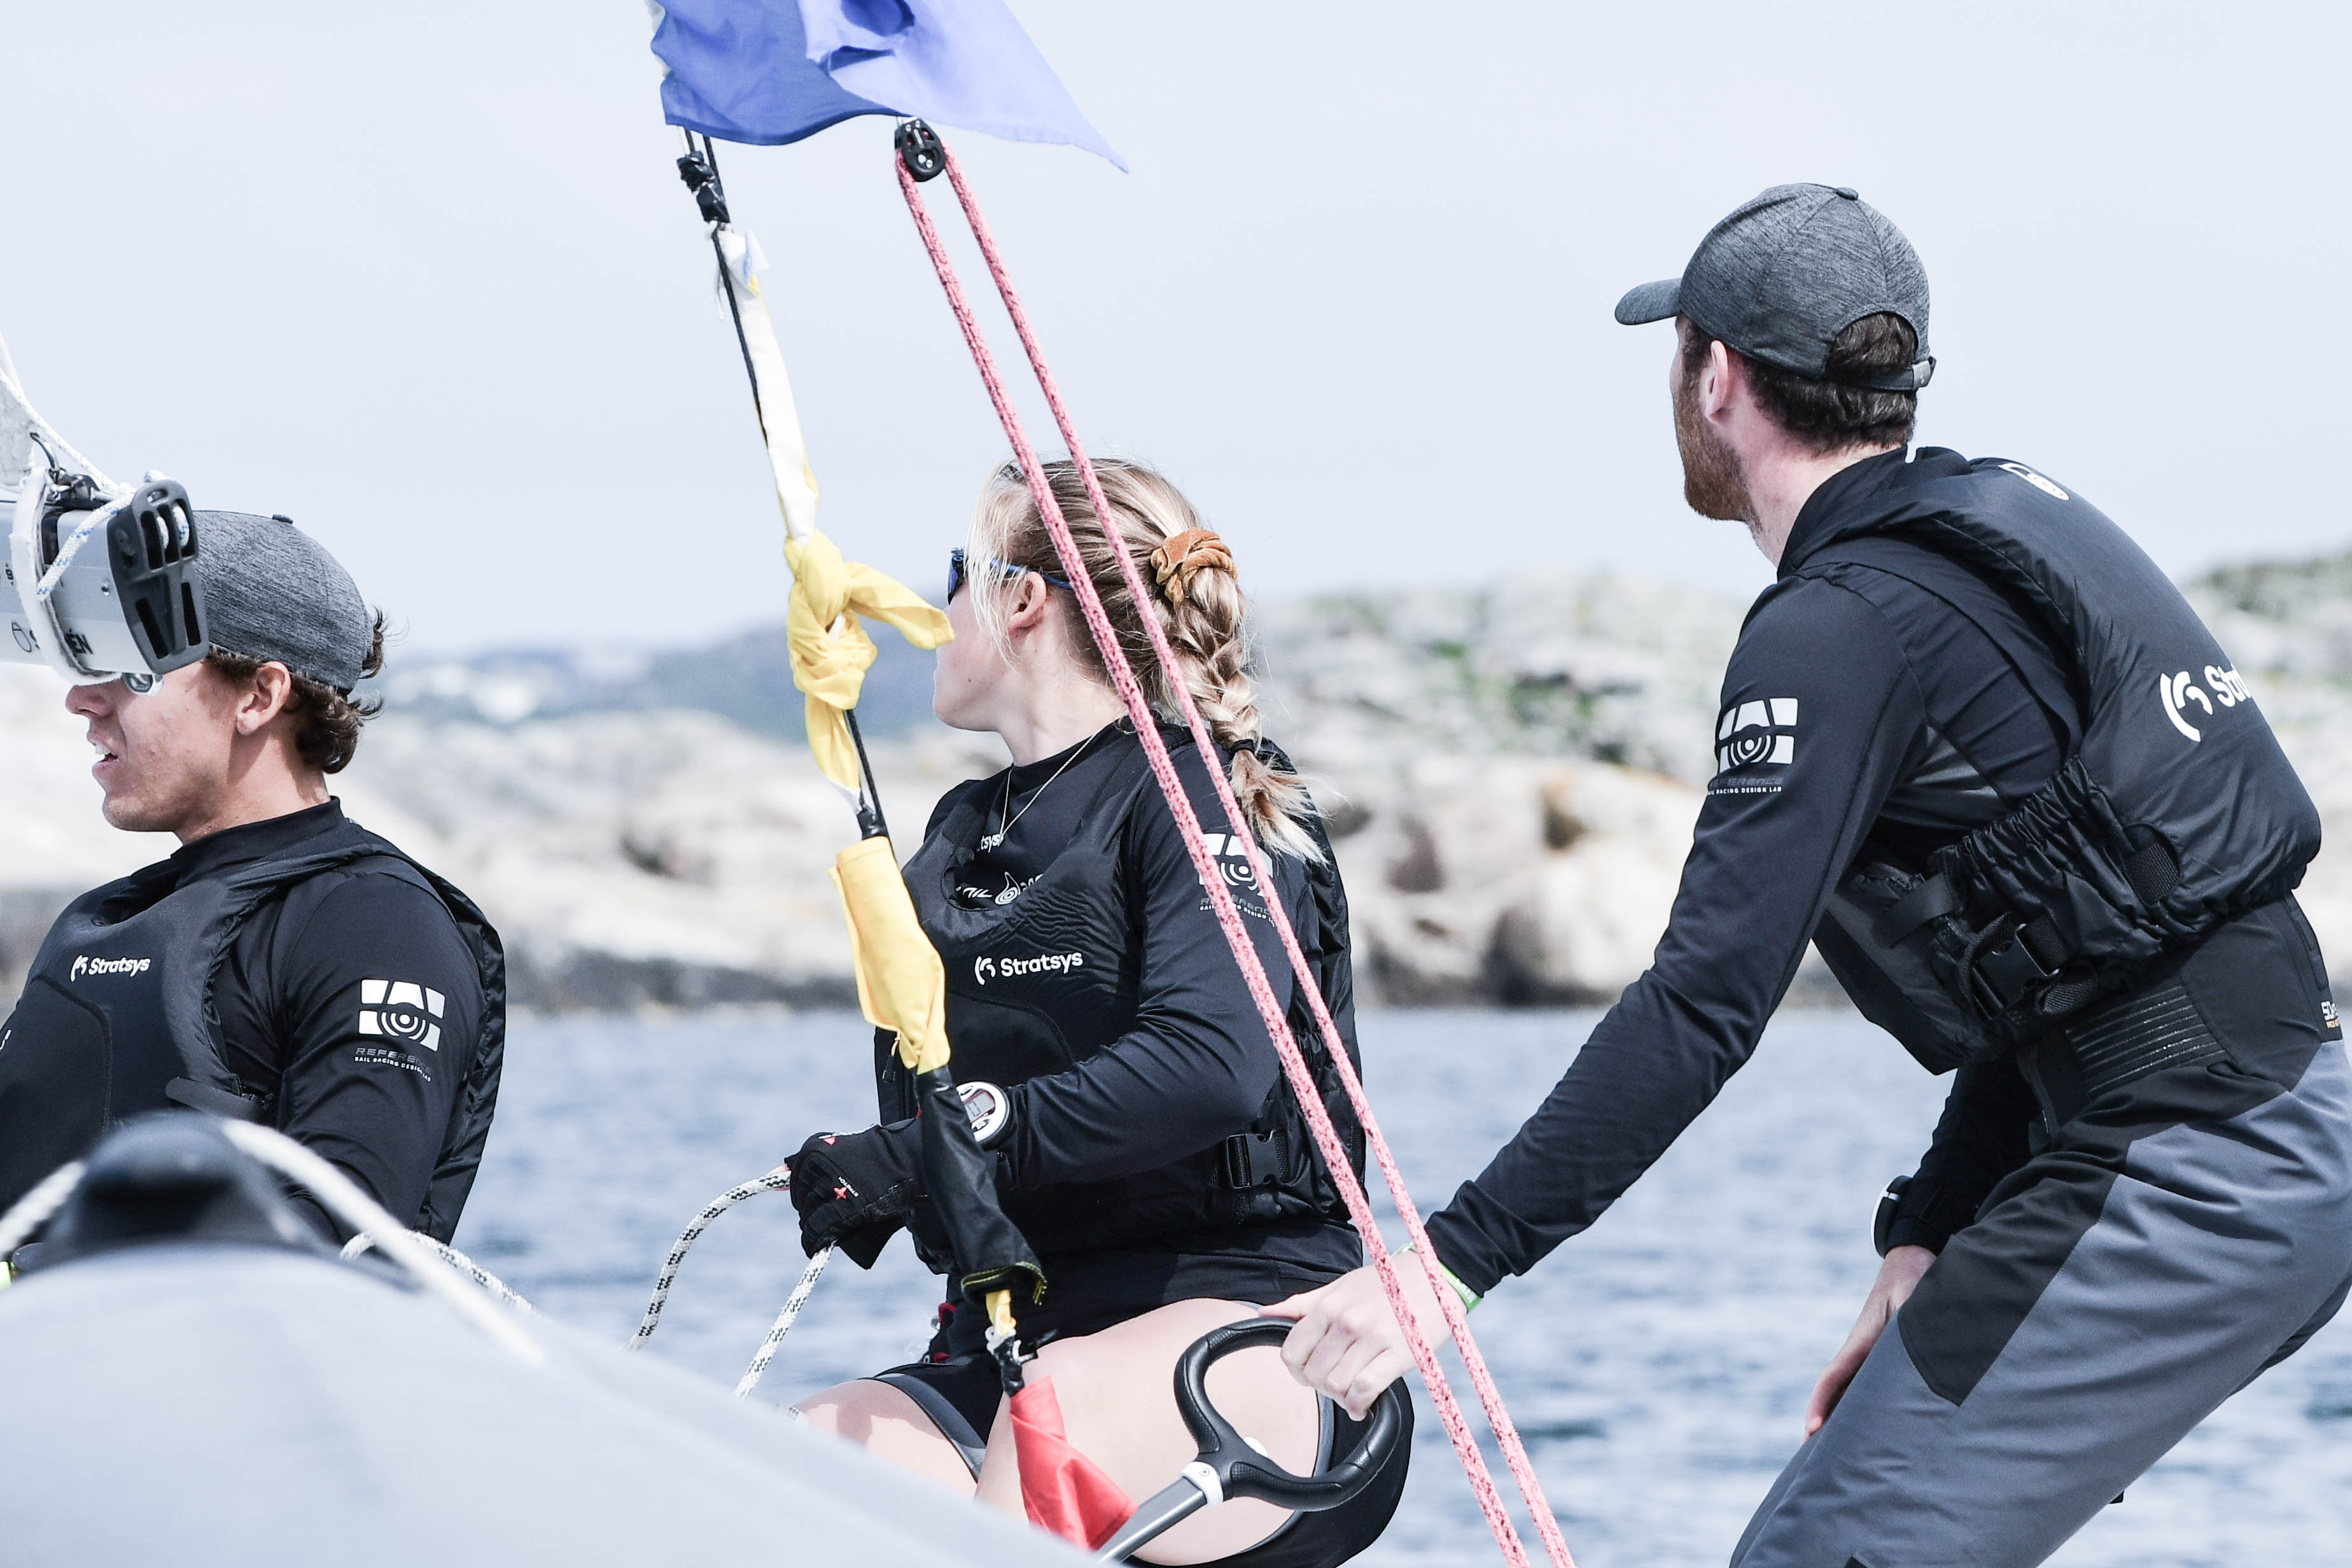 stratsys-sailing-team-3